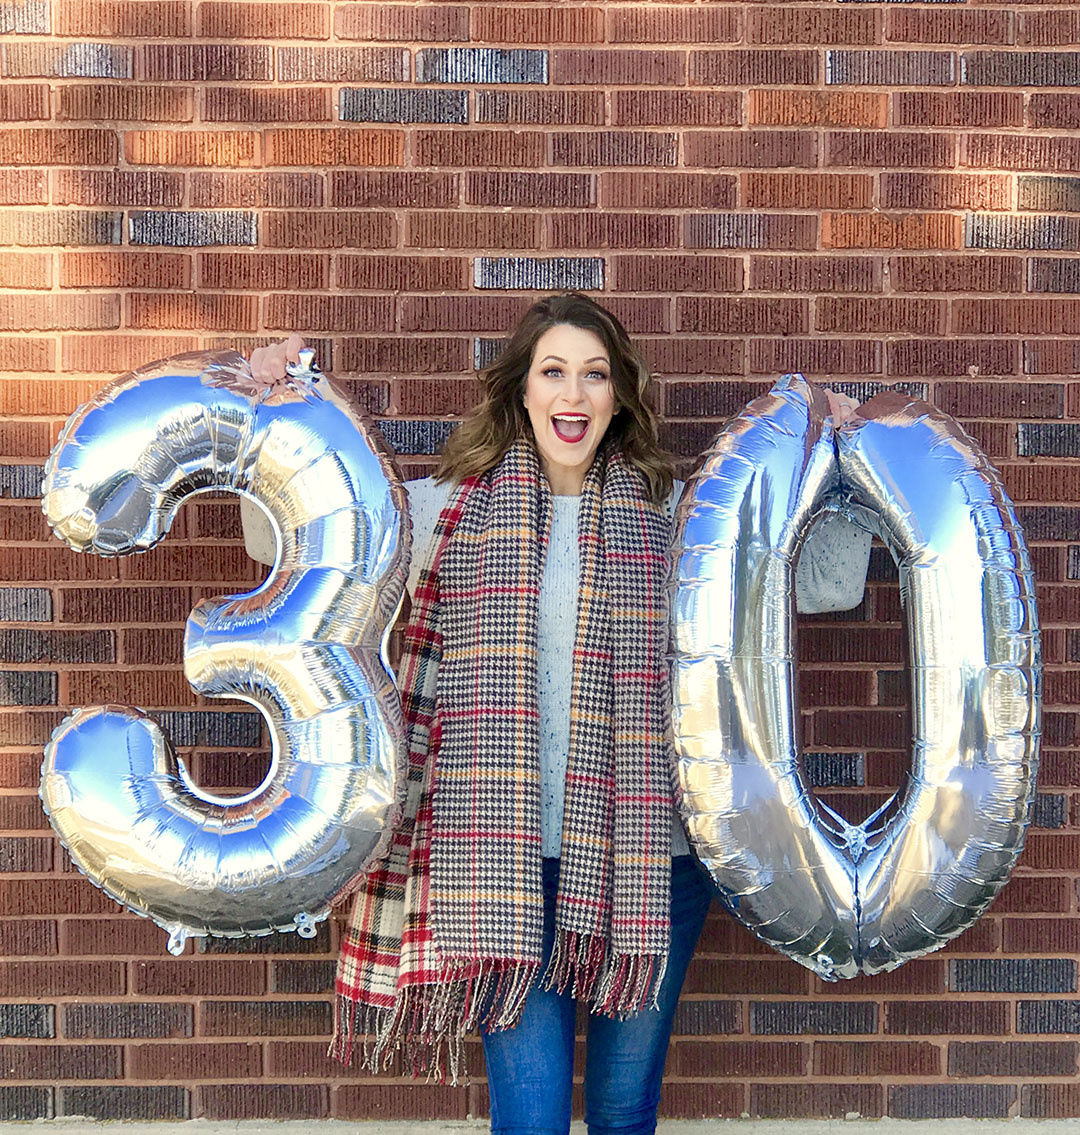 Leaving my 20's behind – Cheers to 30!